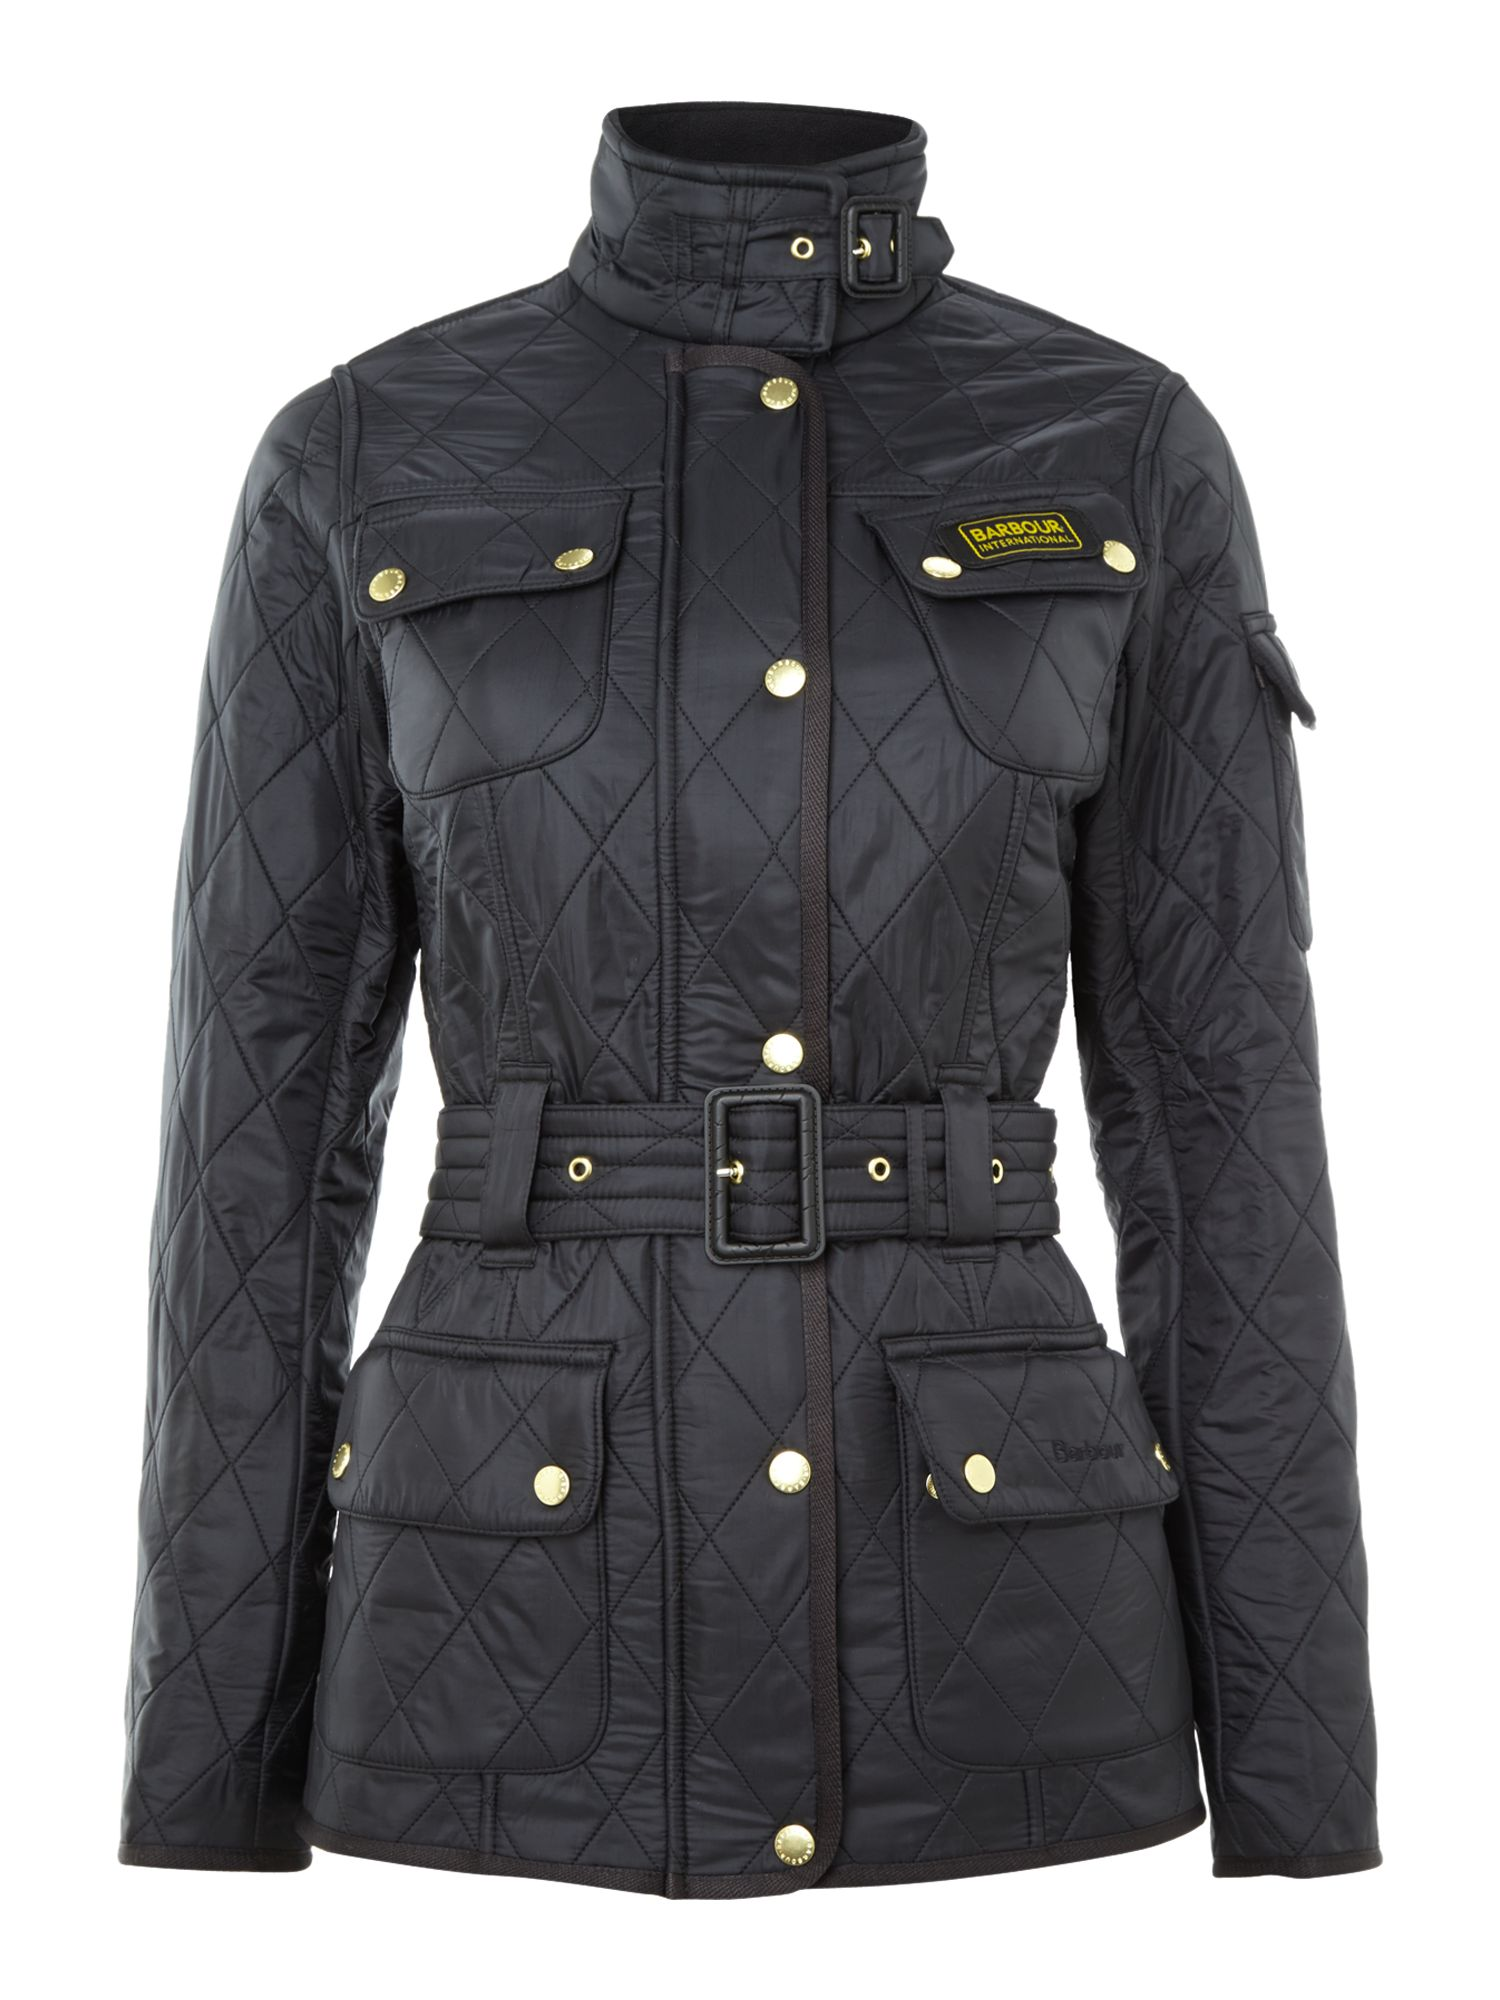 Barbour Jacket Womens : womens barbour international quilted jacket -